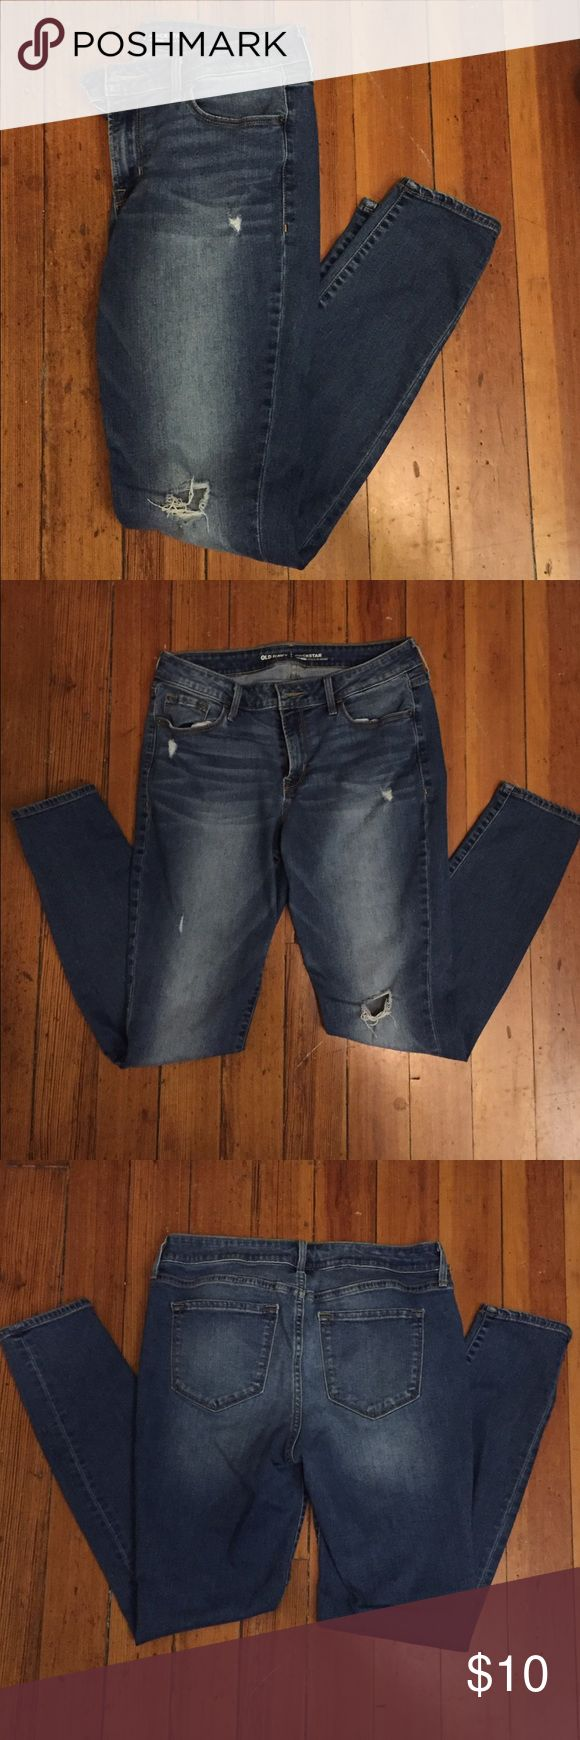 Old Navy Rockstar jeans! Great condition jeans! Old Navy Rockstar style skinny jeans, mid rise, medium wash, super comfortable! The last pic shows the color best.  •Bundle up and save! 🛍 •Reasonable offers are welcomed! 💲 •All items from a smoke-free home. 🚭 •More pictures available upon request! 📸 •Thanks for looking! ☮💙☺️ Old Navy Jeans Skinny